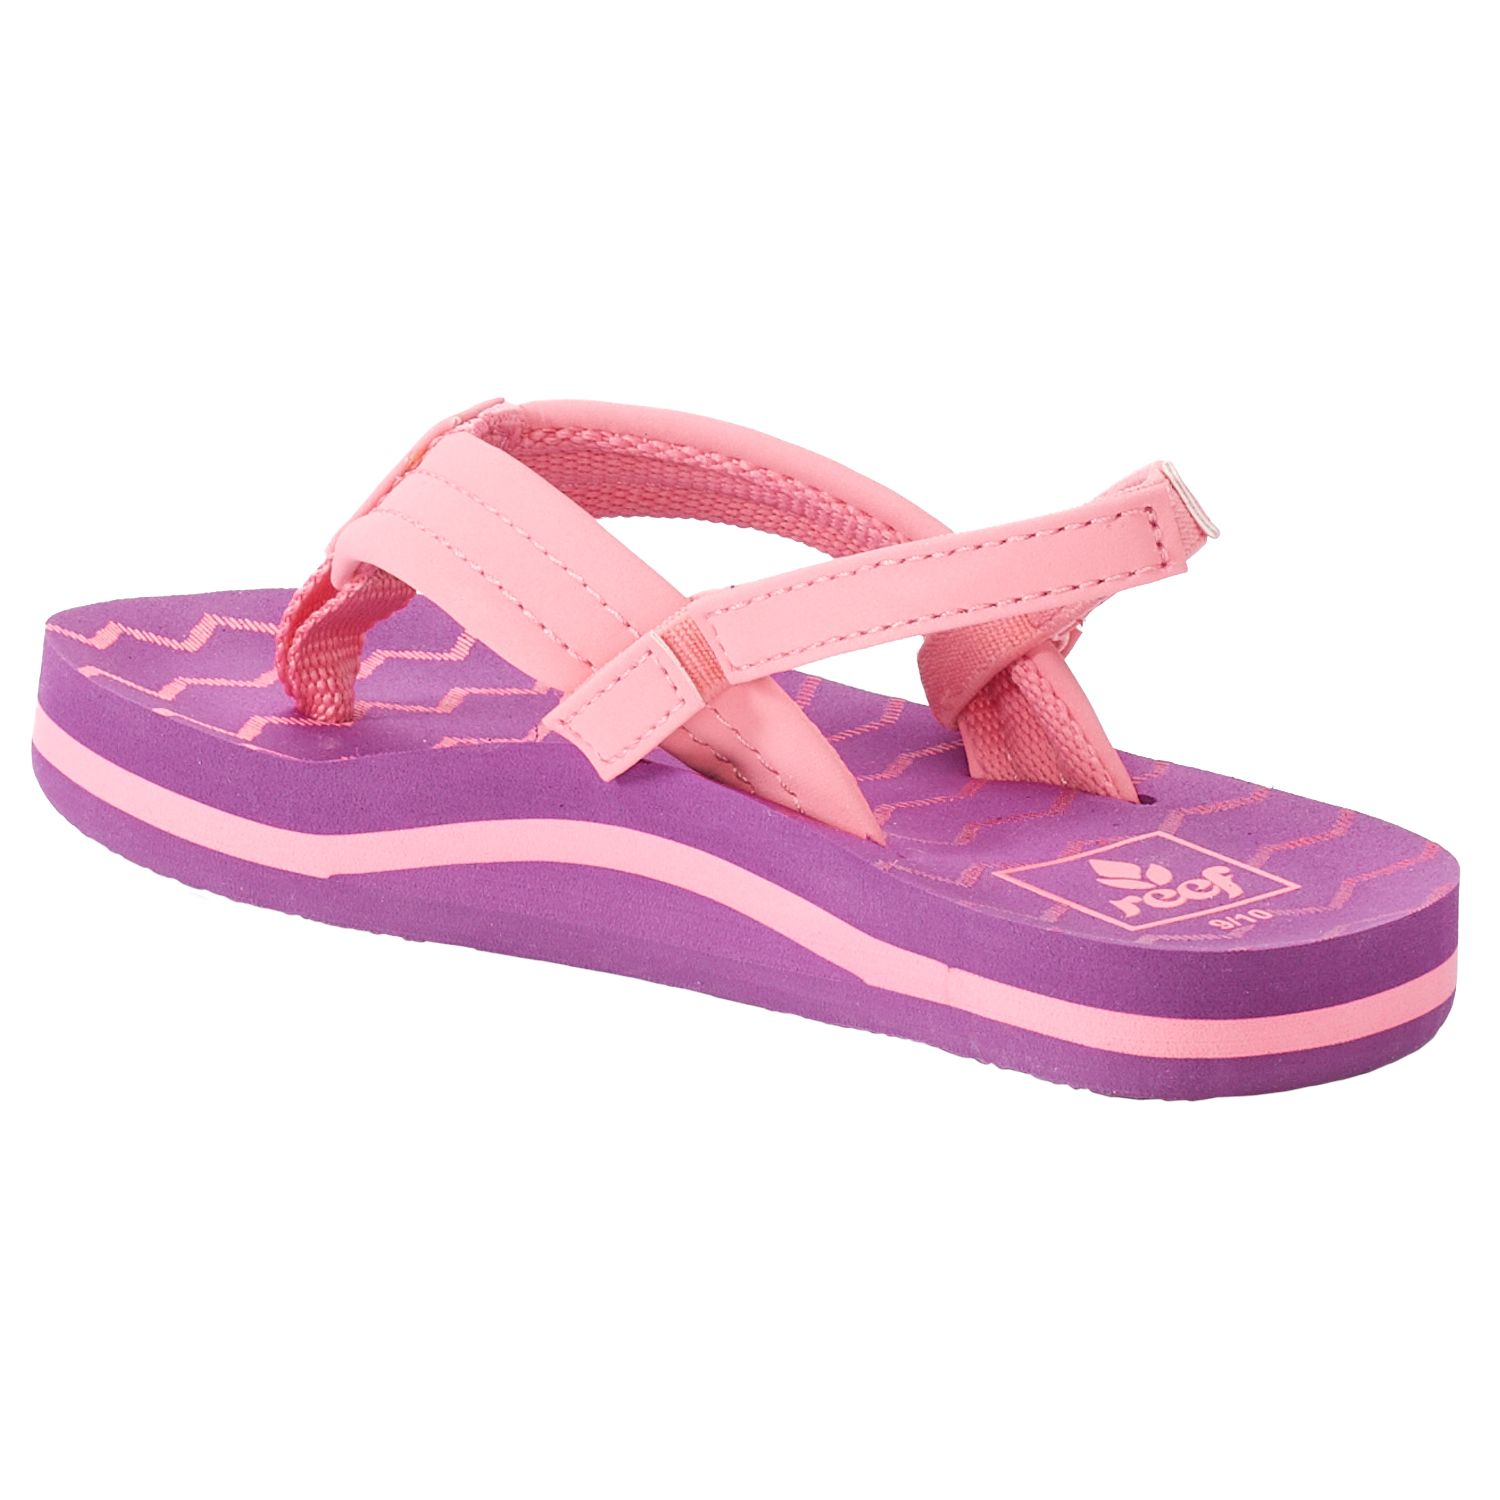 a2341e71feb9 Girls REEF Flip Flops Kids Shoes